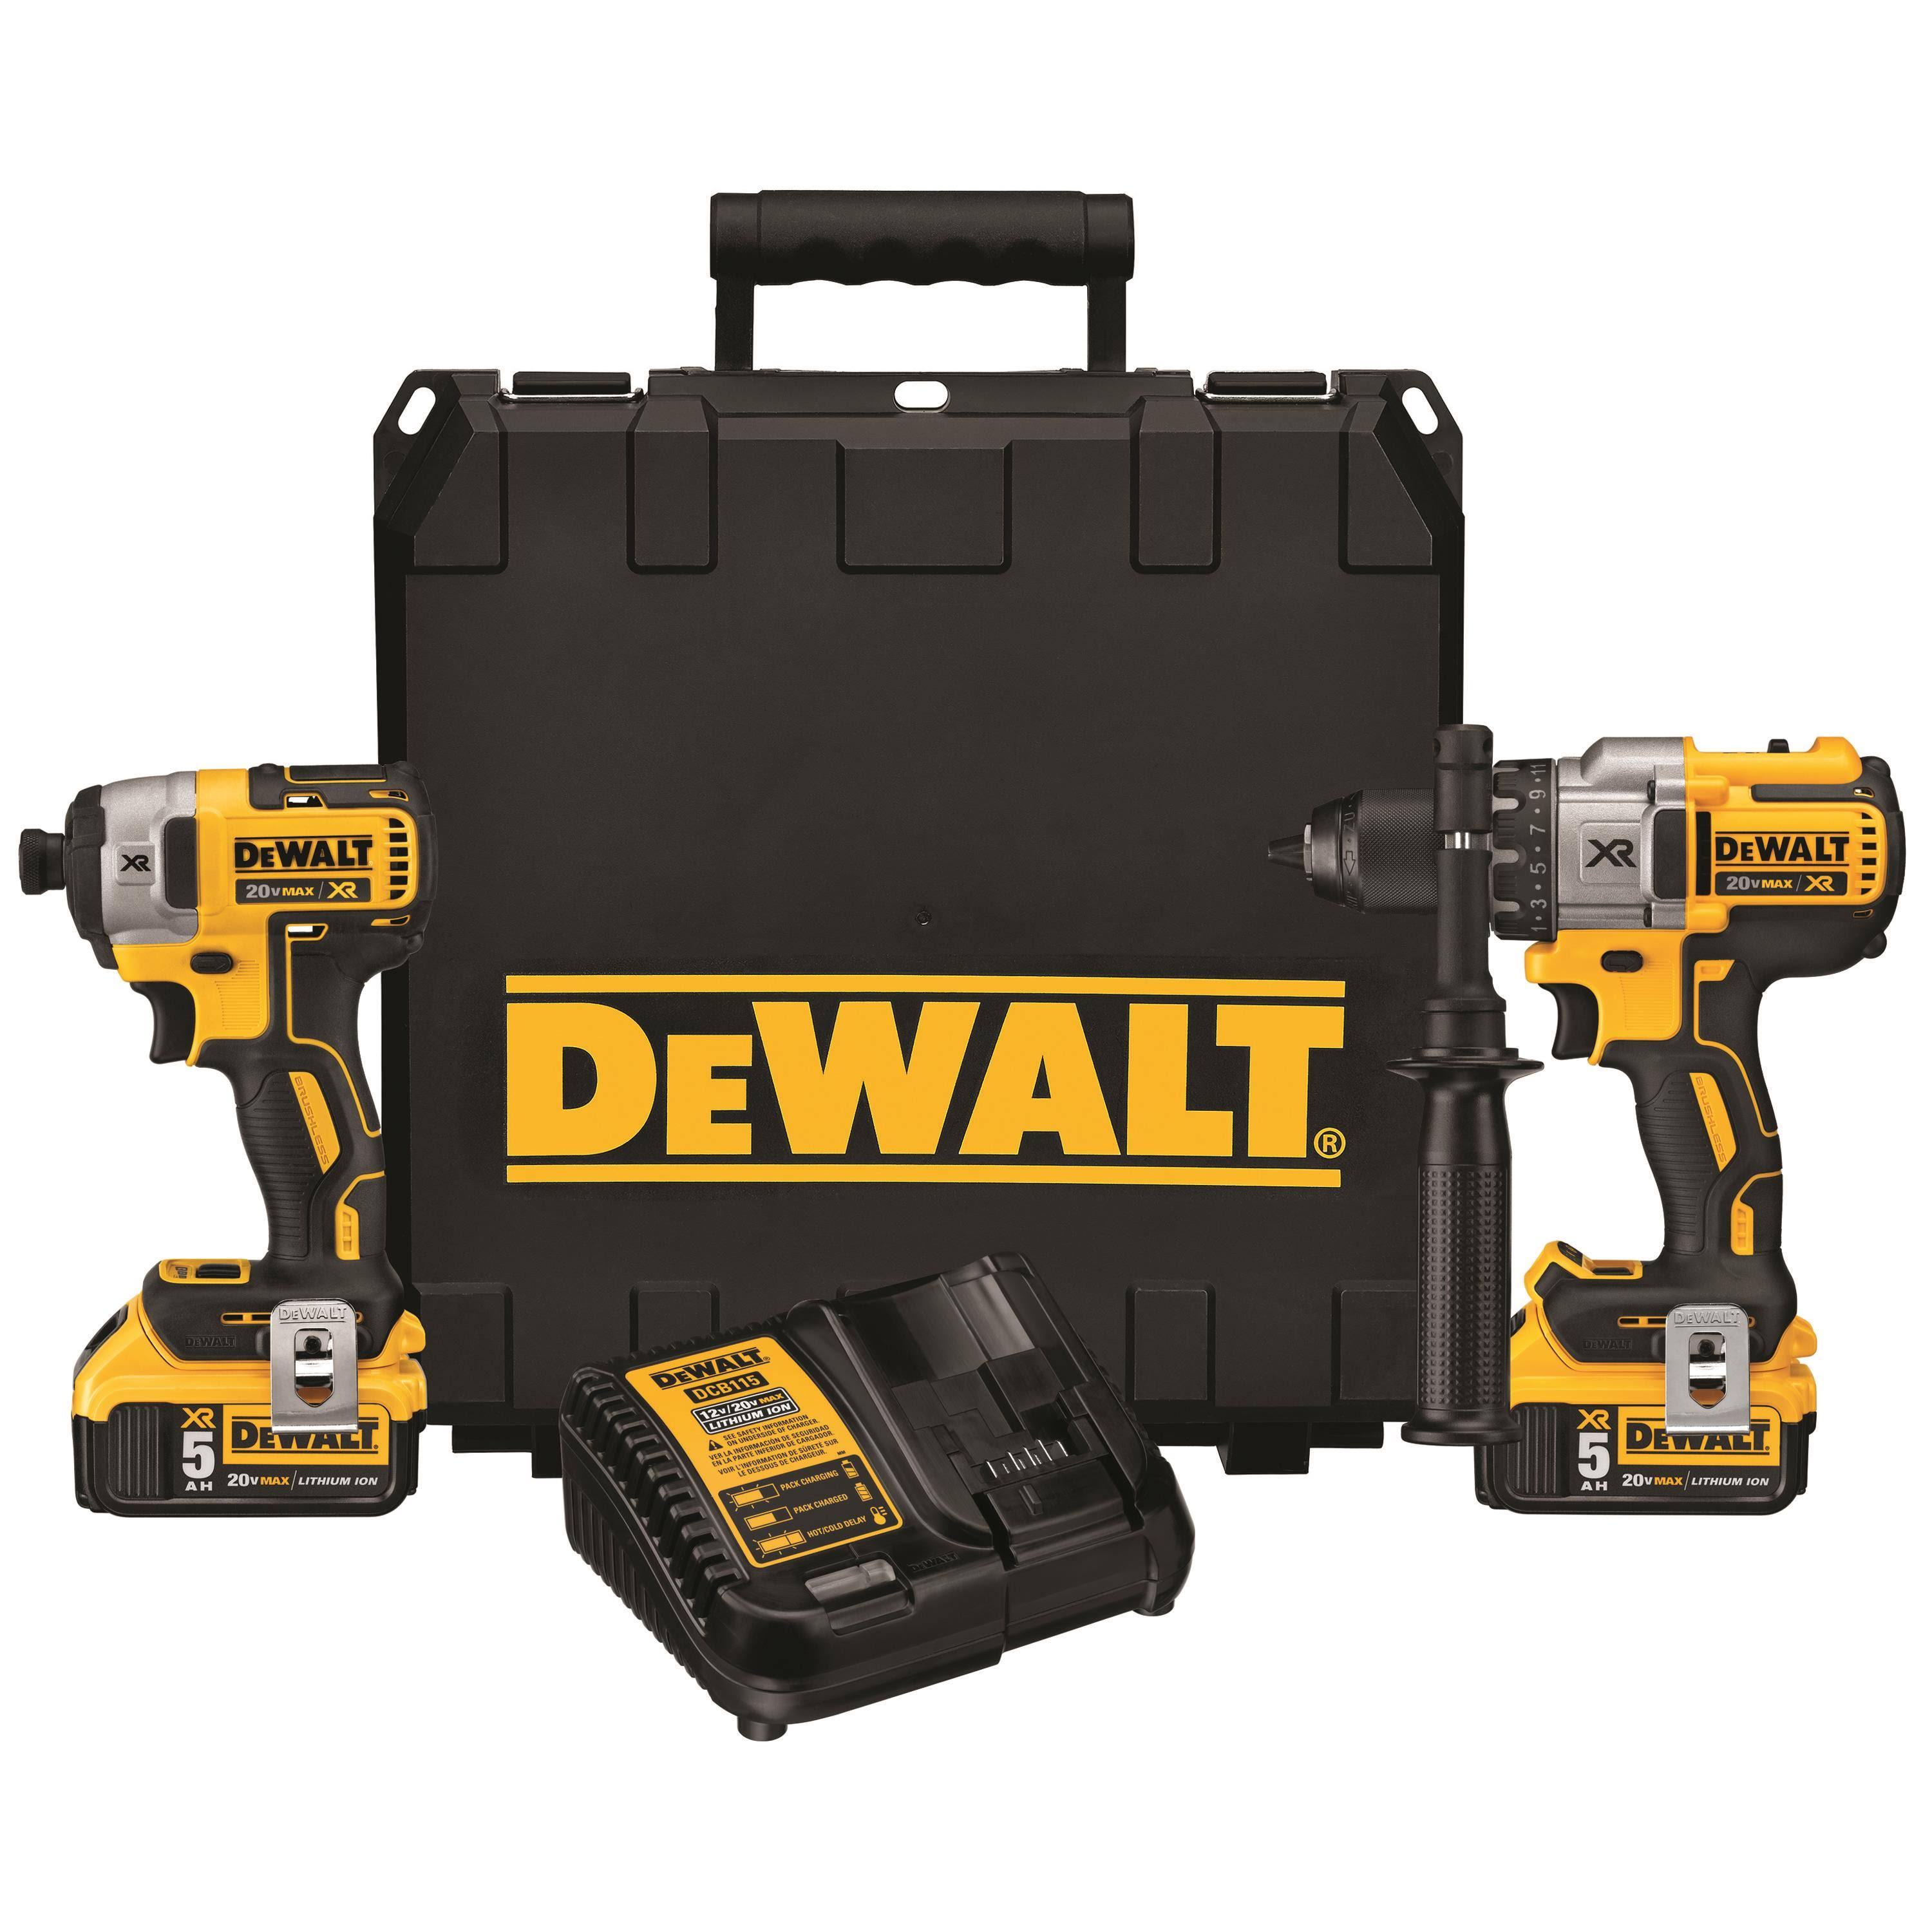 Dewalt DCK299P2 Brushless Hammerdrill and Impact Driver Kit - 20V Max Li-Ion